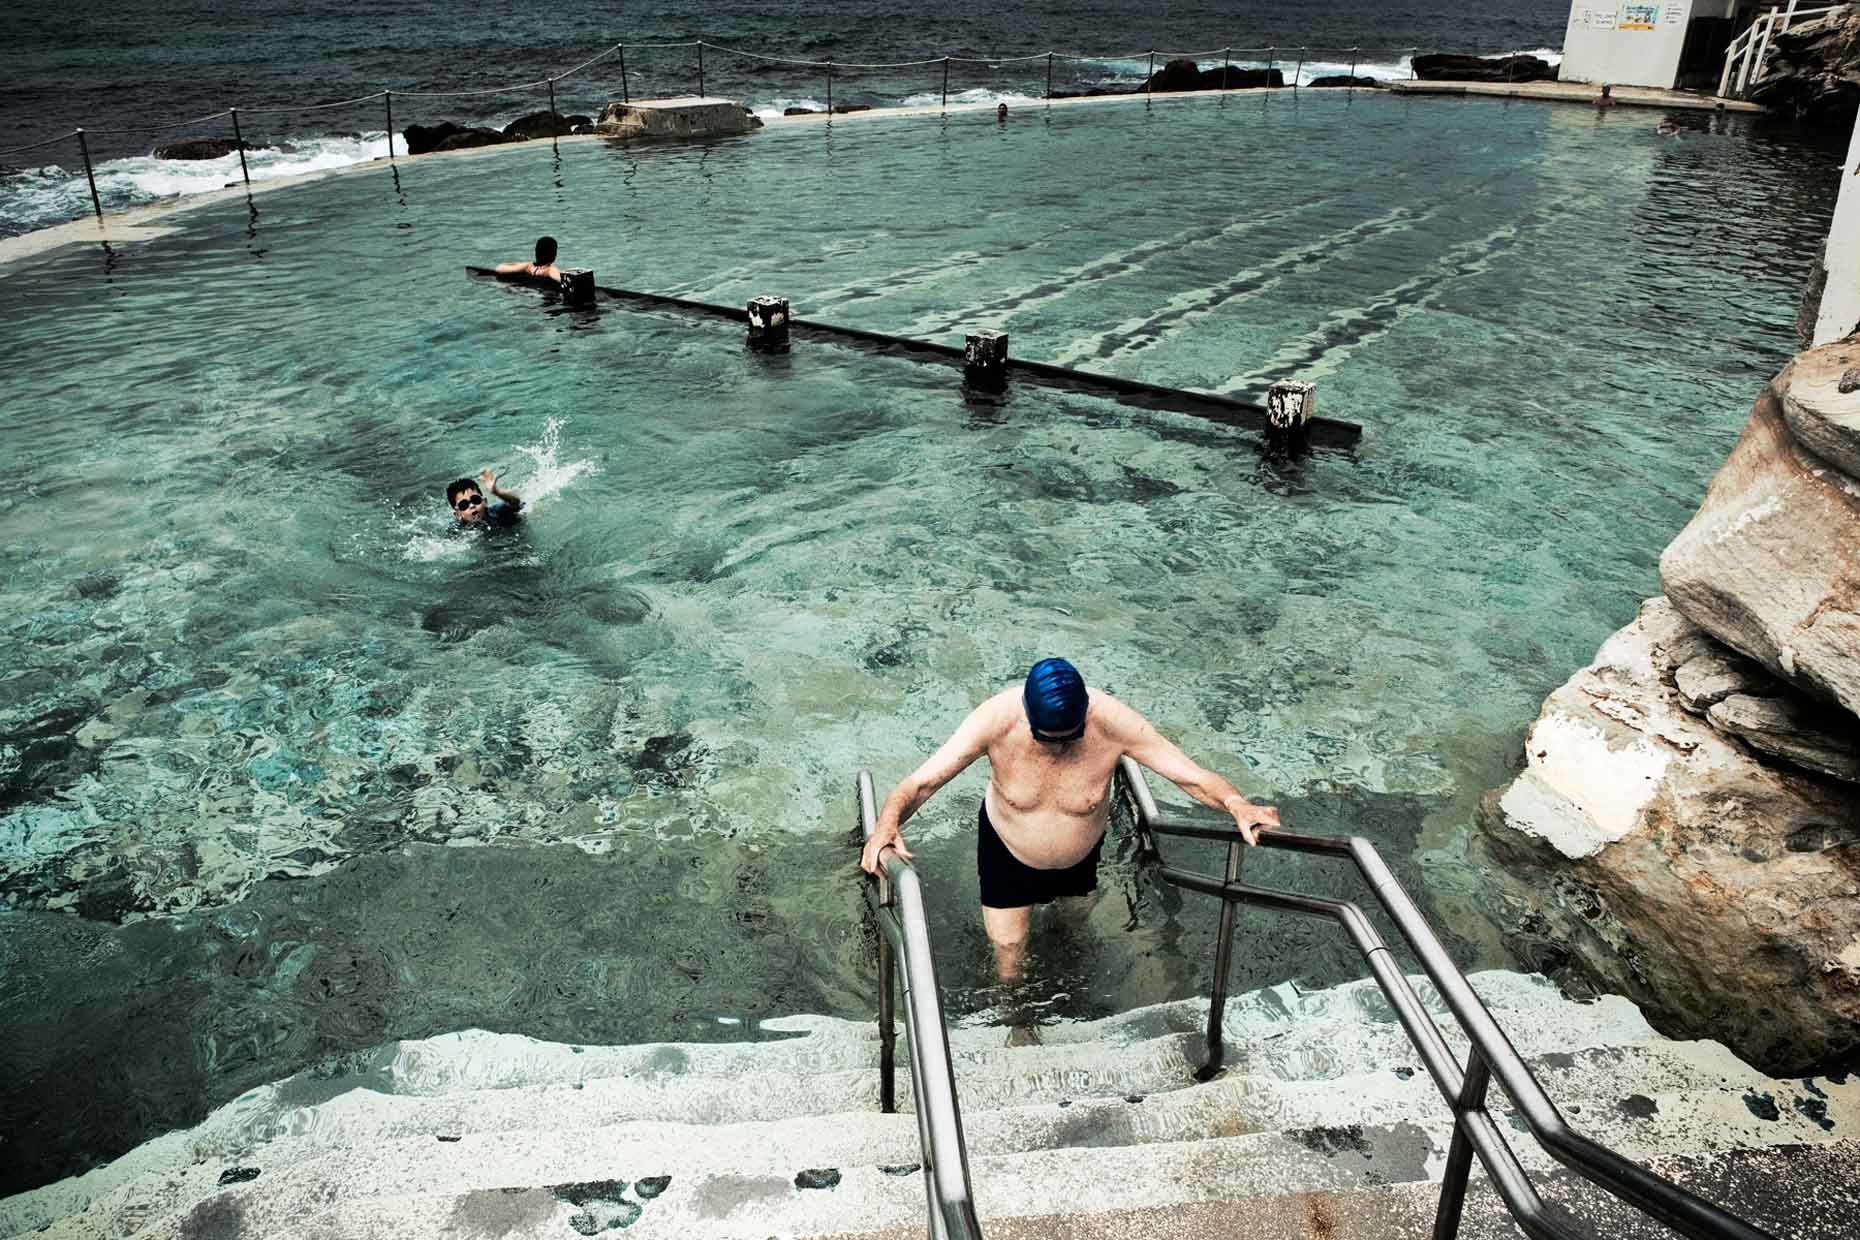 australia | sydney bronte beach pool tidal pools